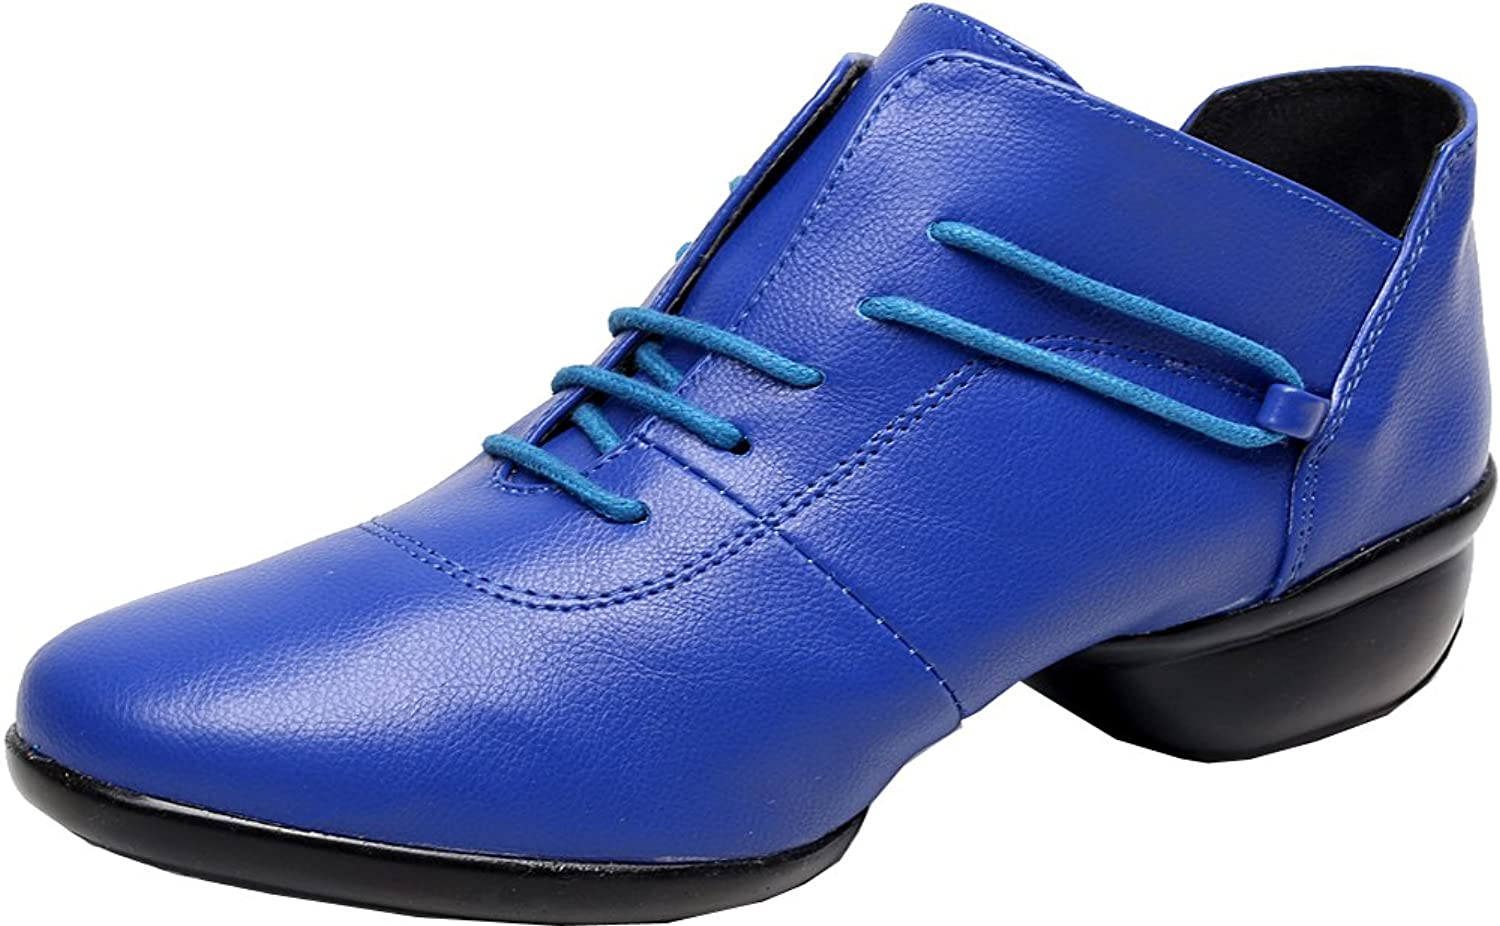 Abby 1002 Womens Low Top Jazz Practice Dance shoes Round Toe Lace Up Flat Split Sole PU Sneakers